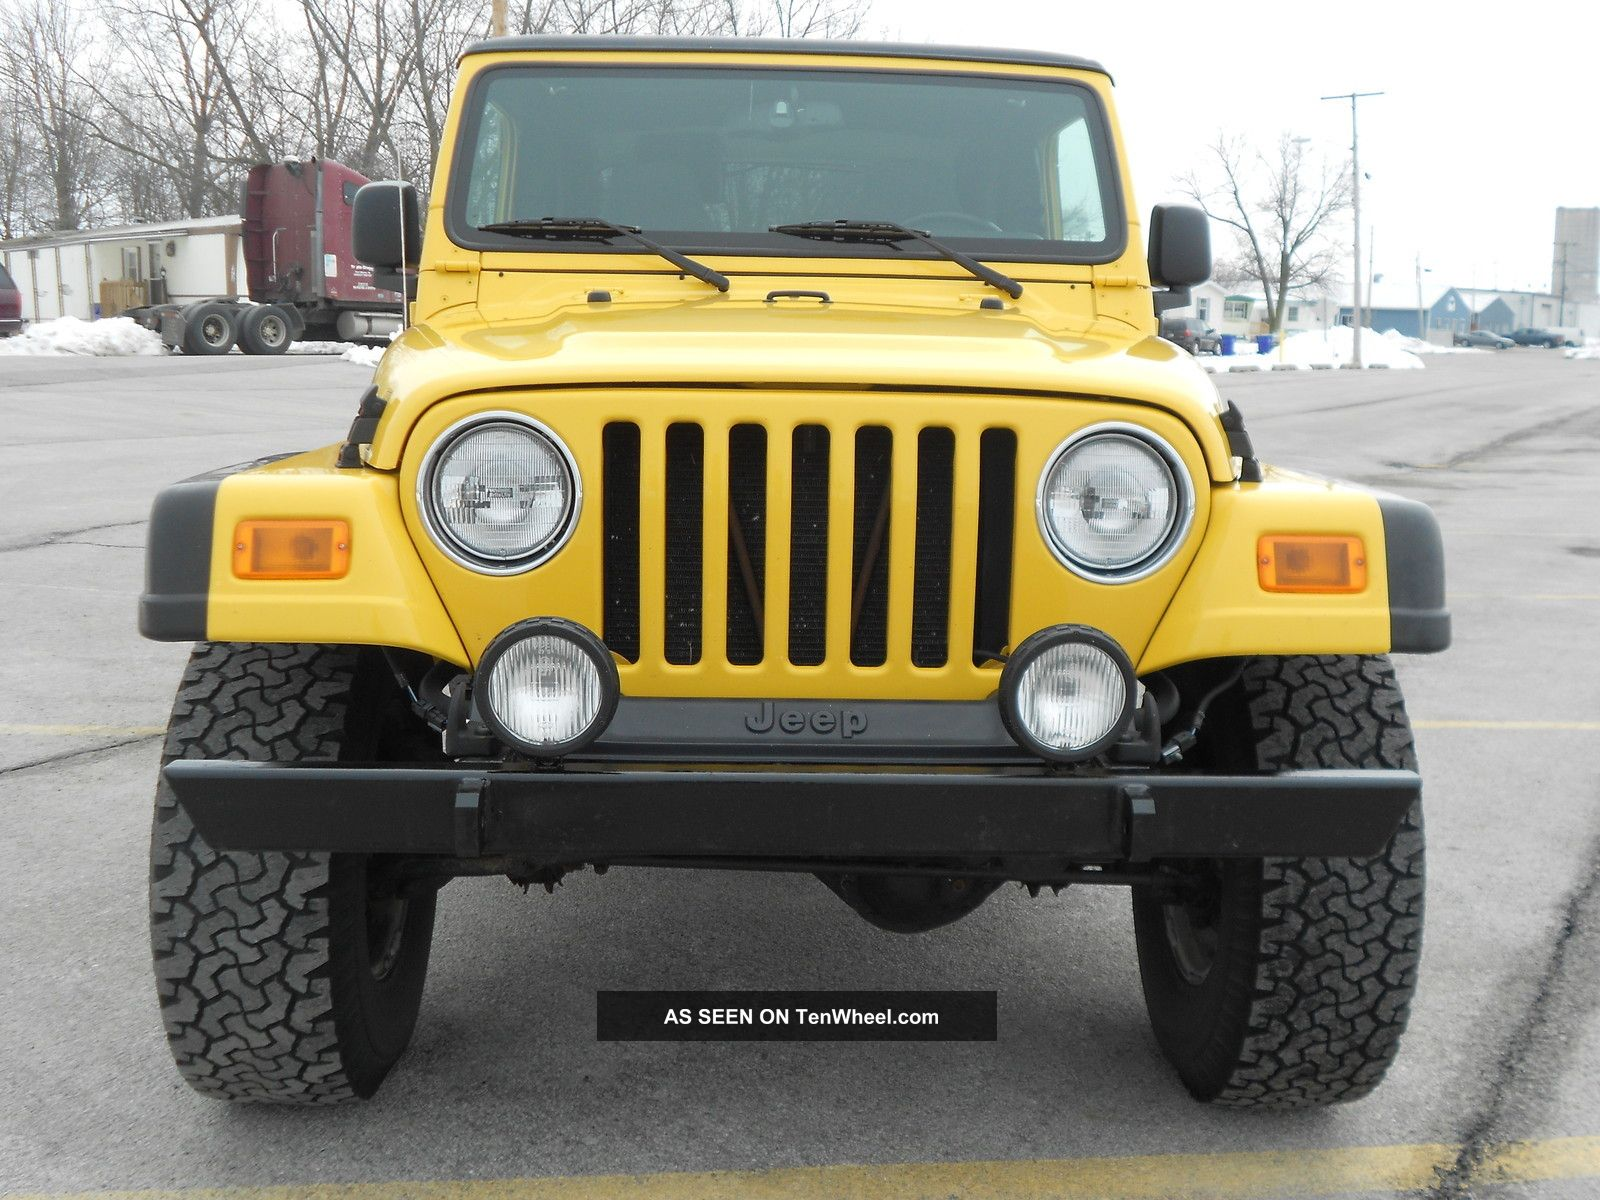 2004 Jeep Wrangler Rubicon 1 Owner Well Maintained